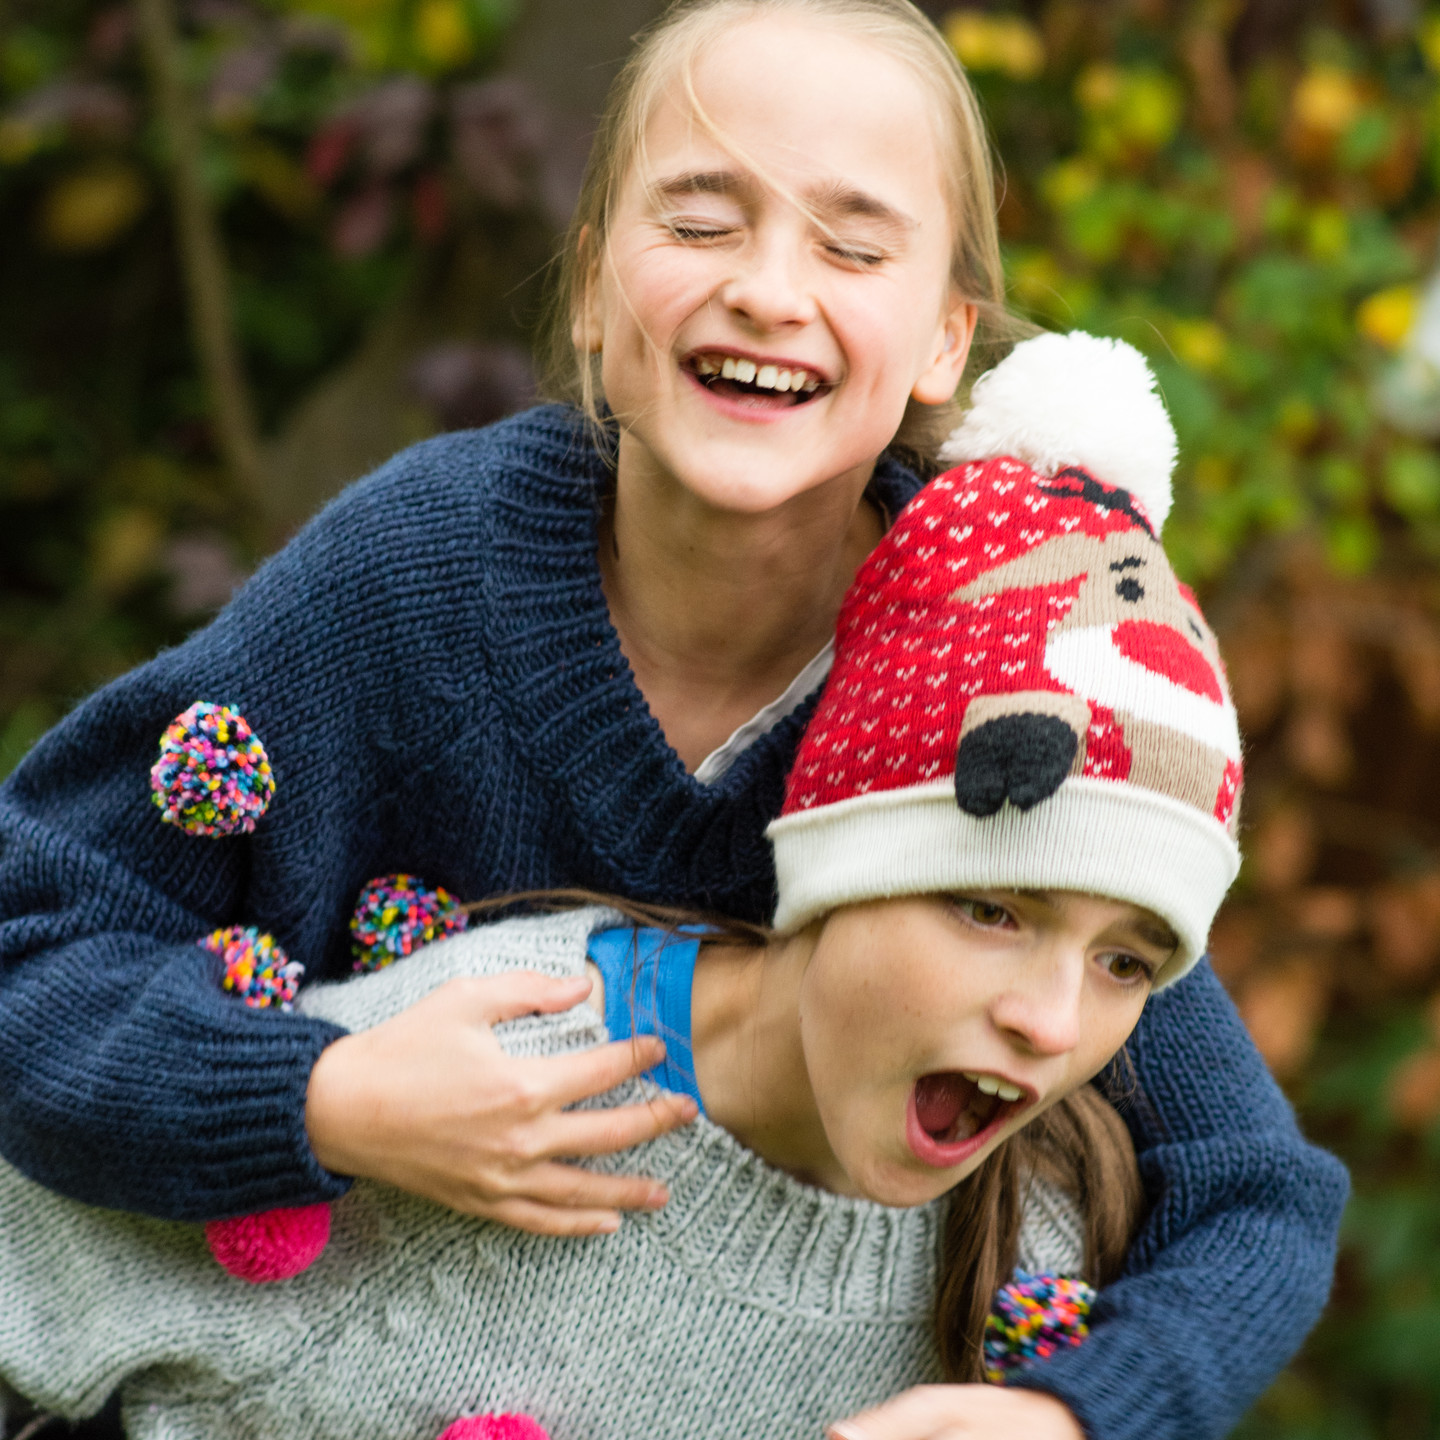 Natural kids photographs, fun photograph of girl playing giving each other a piggyback